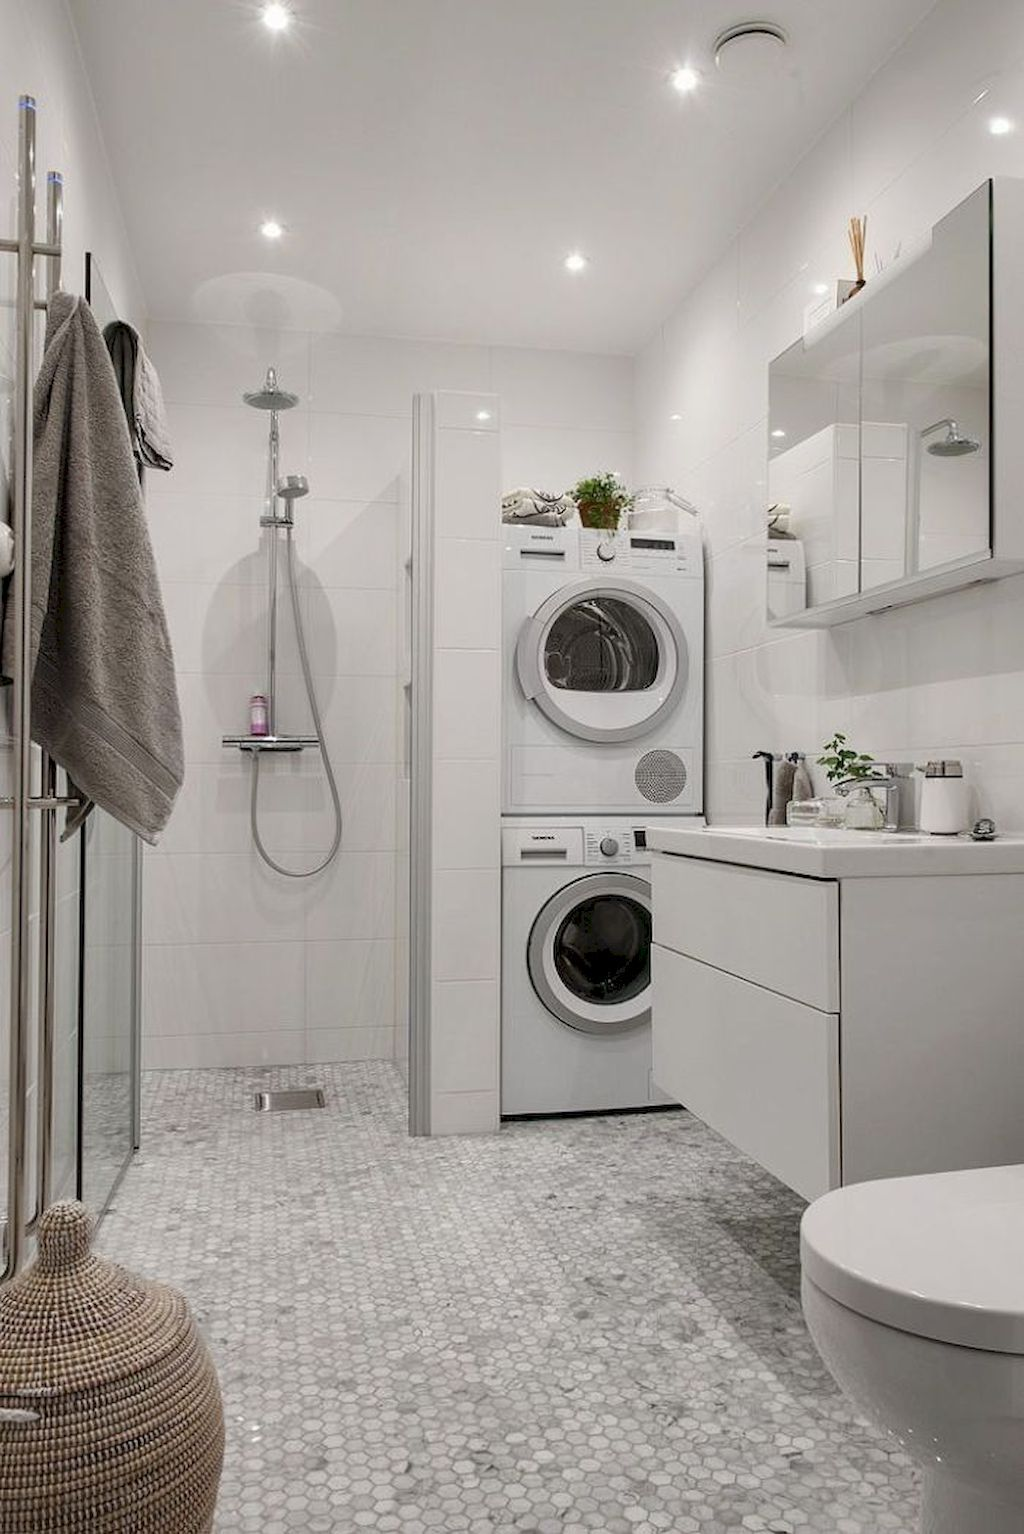 Awesome 3 Functional Small Laundry Room Design Ideas https